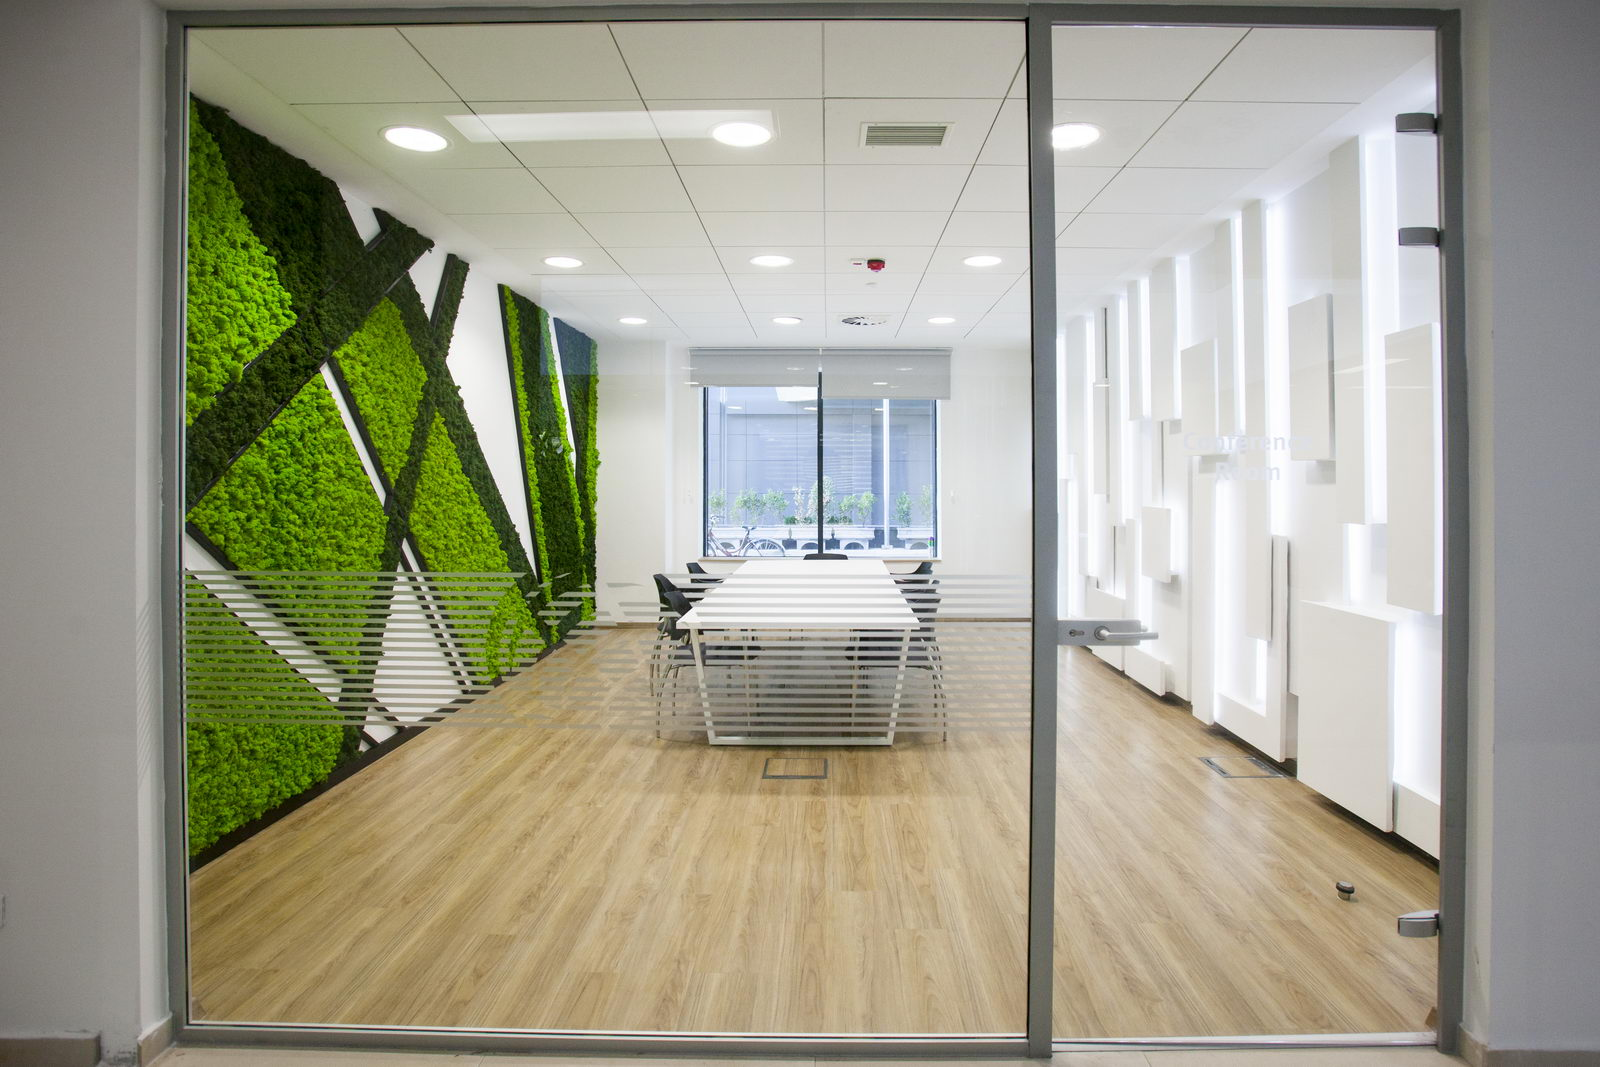 Interior design of meeting rooms, bank offices in Skopje